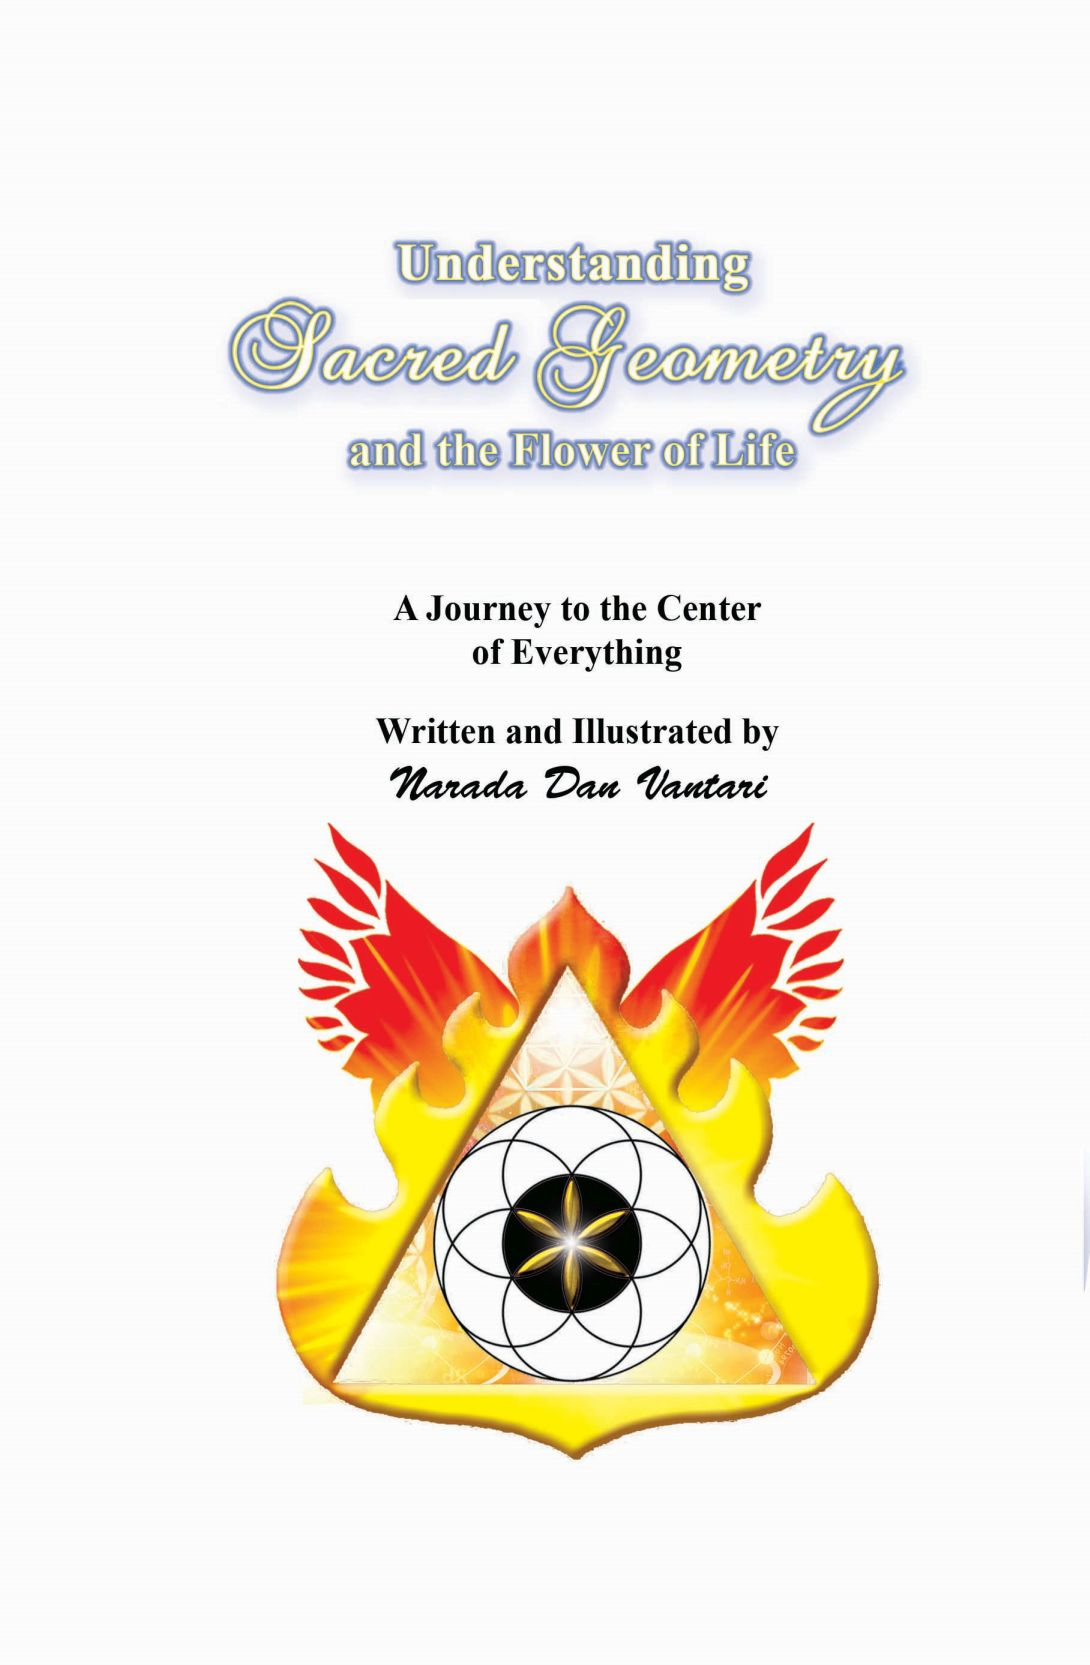 Understanding Sacred Geometry and the Flower of Life